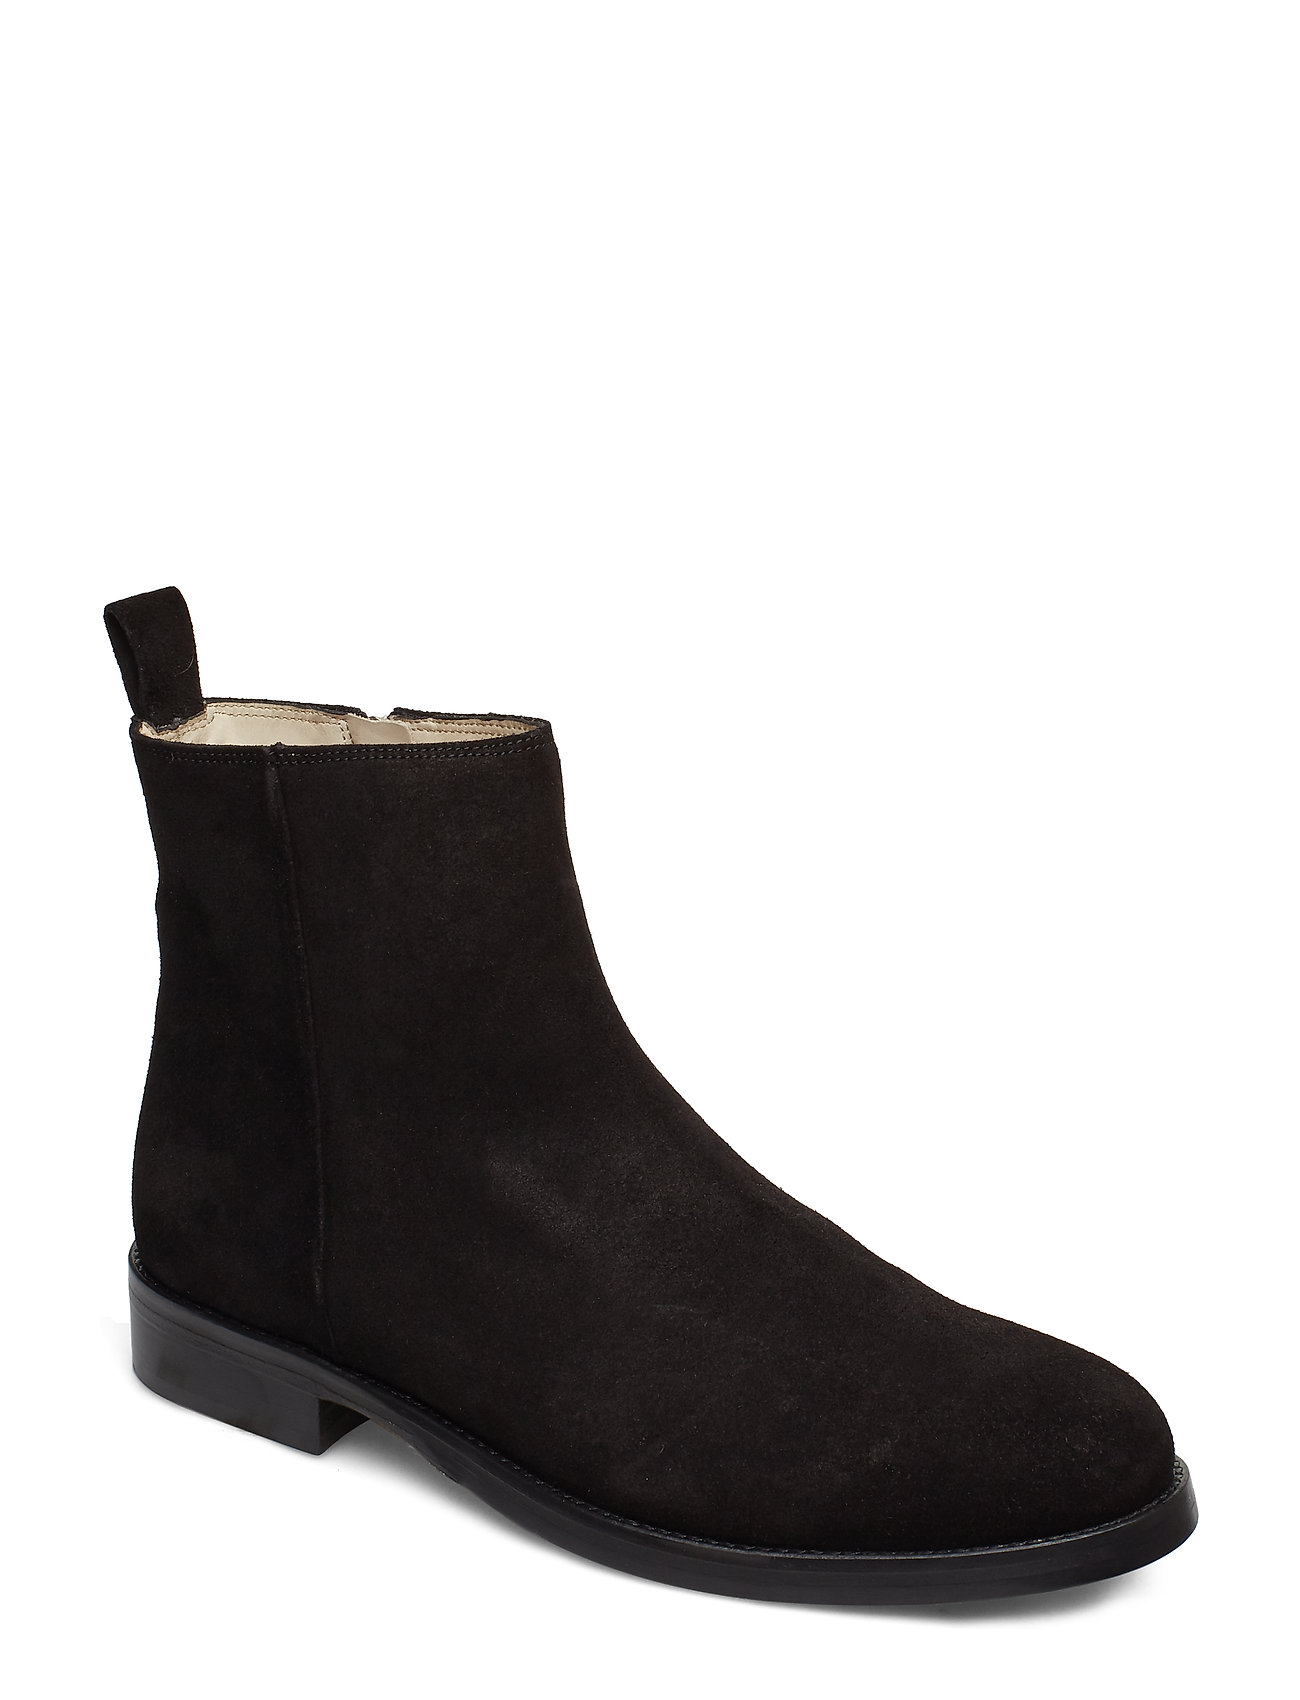 Image of Bond Ankle Boot Suede Støvlet Chelsea Boot Sort Royal RepubliQ (3210235039)